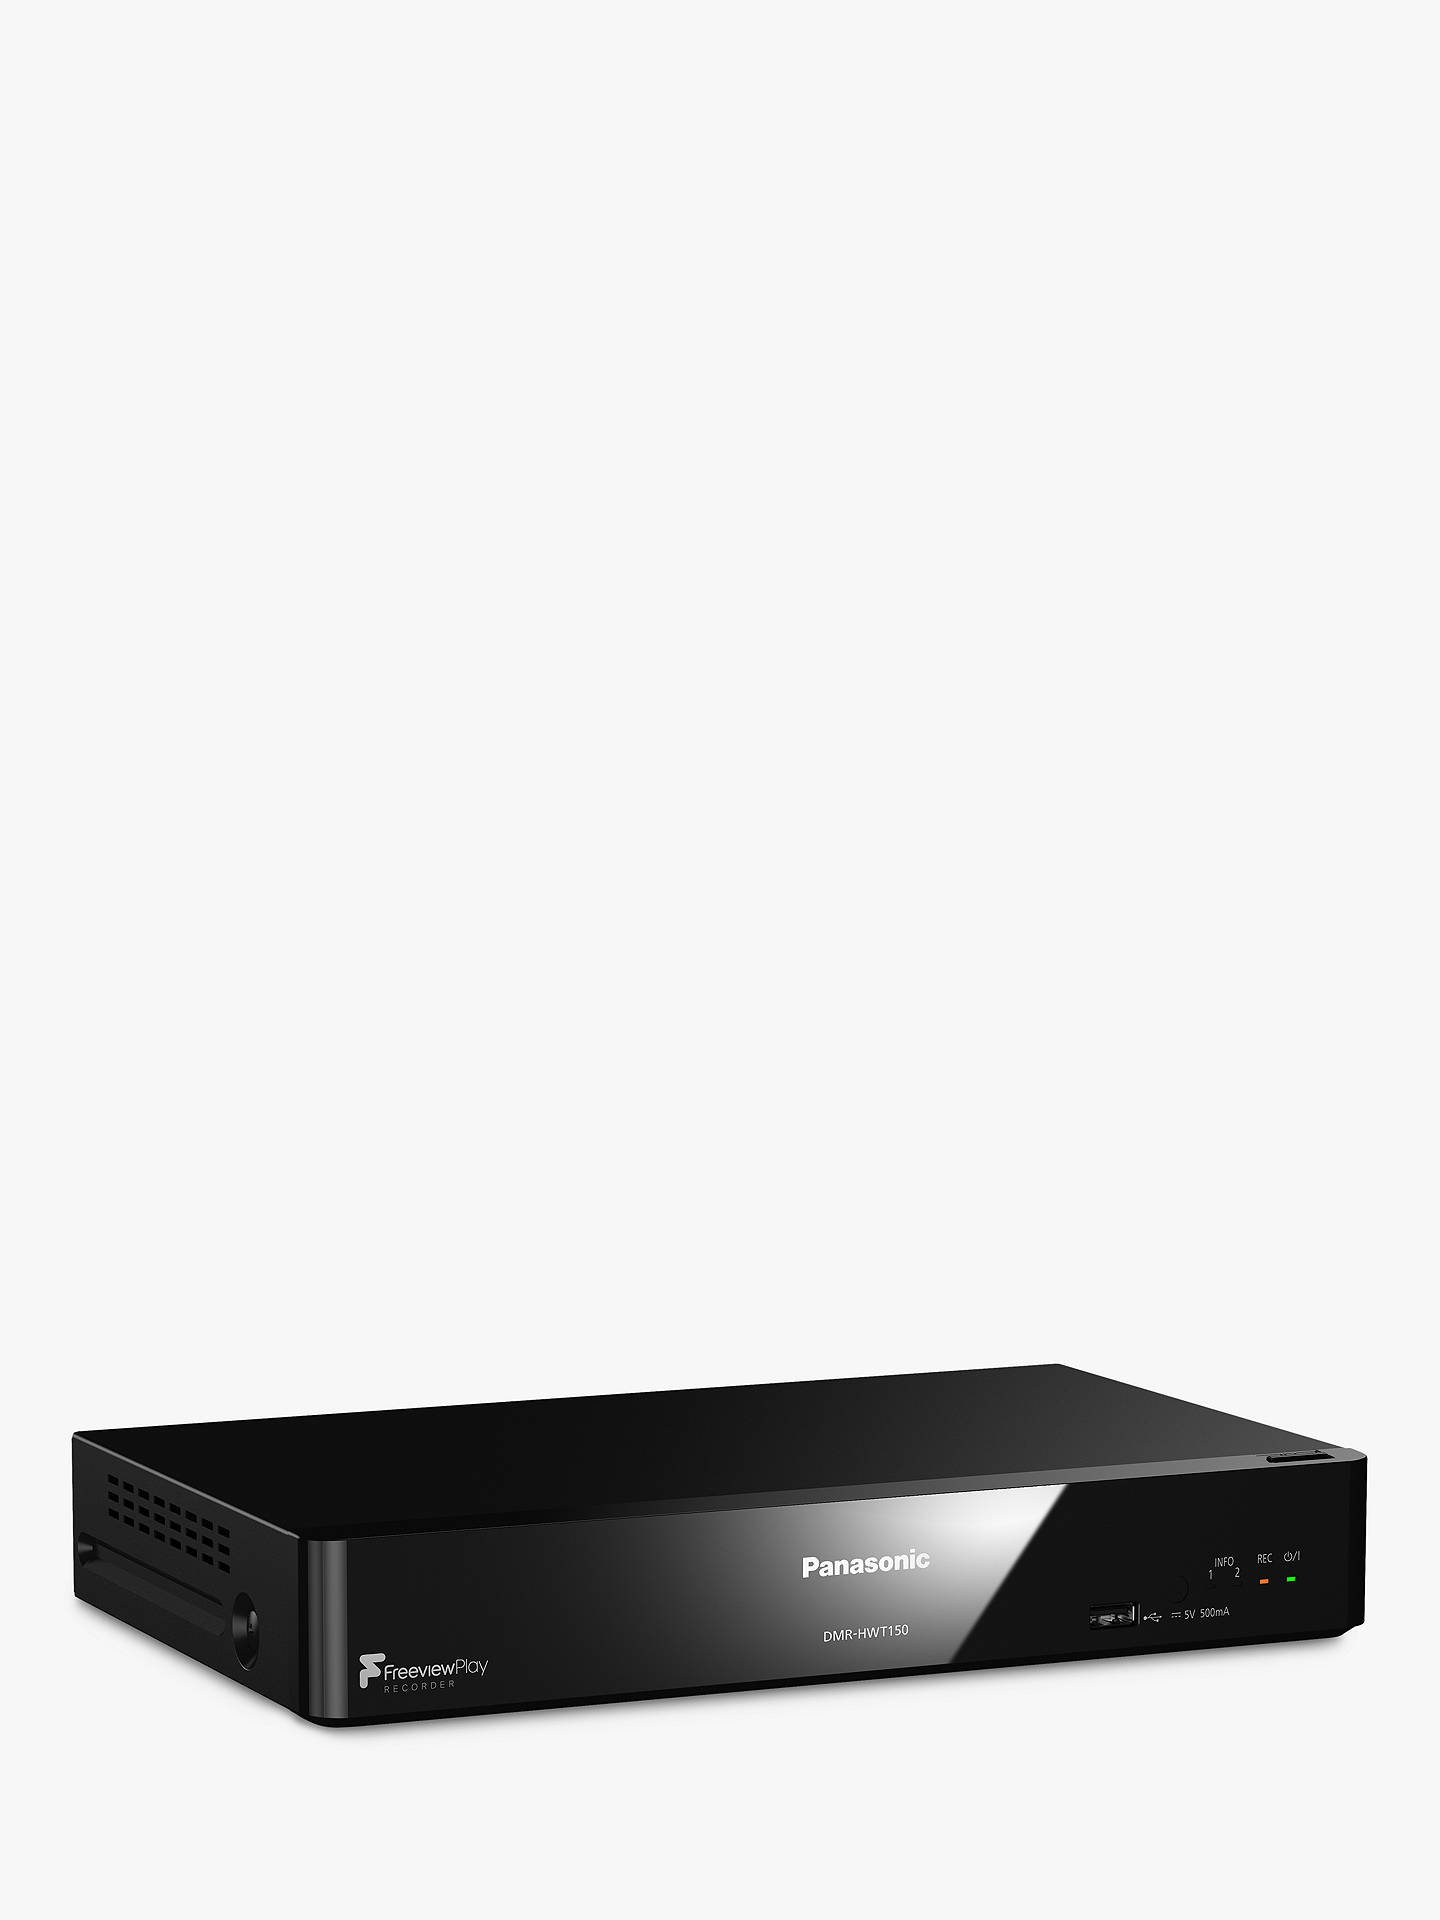 Buy Panasonic DMR-HWT150EB Smart Freeview HD & Freeview Play PVR with 500GB HDD Recorder Online at johnlewis.com